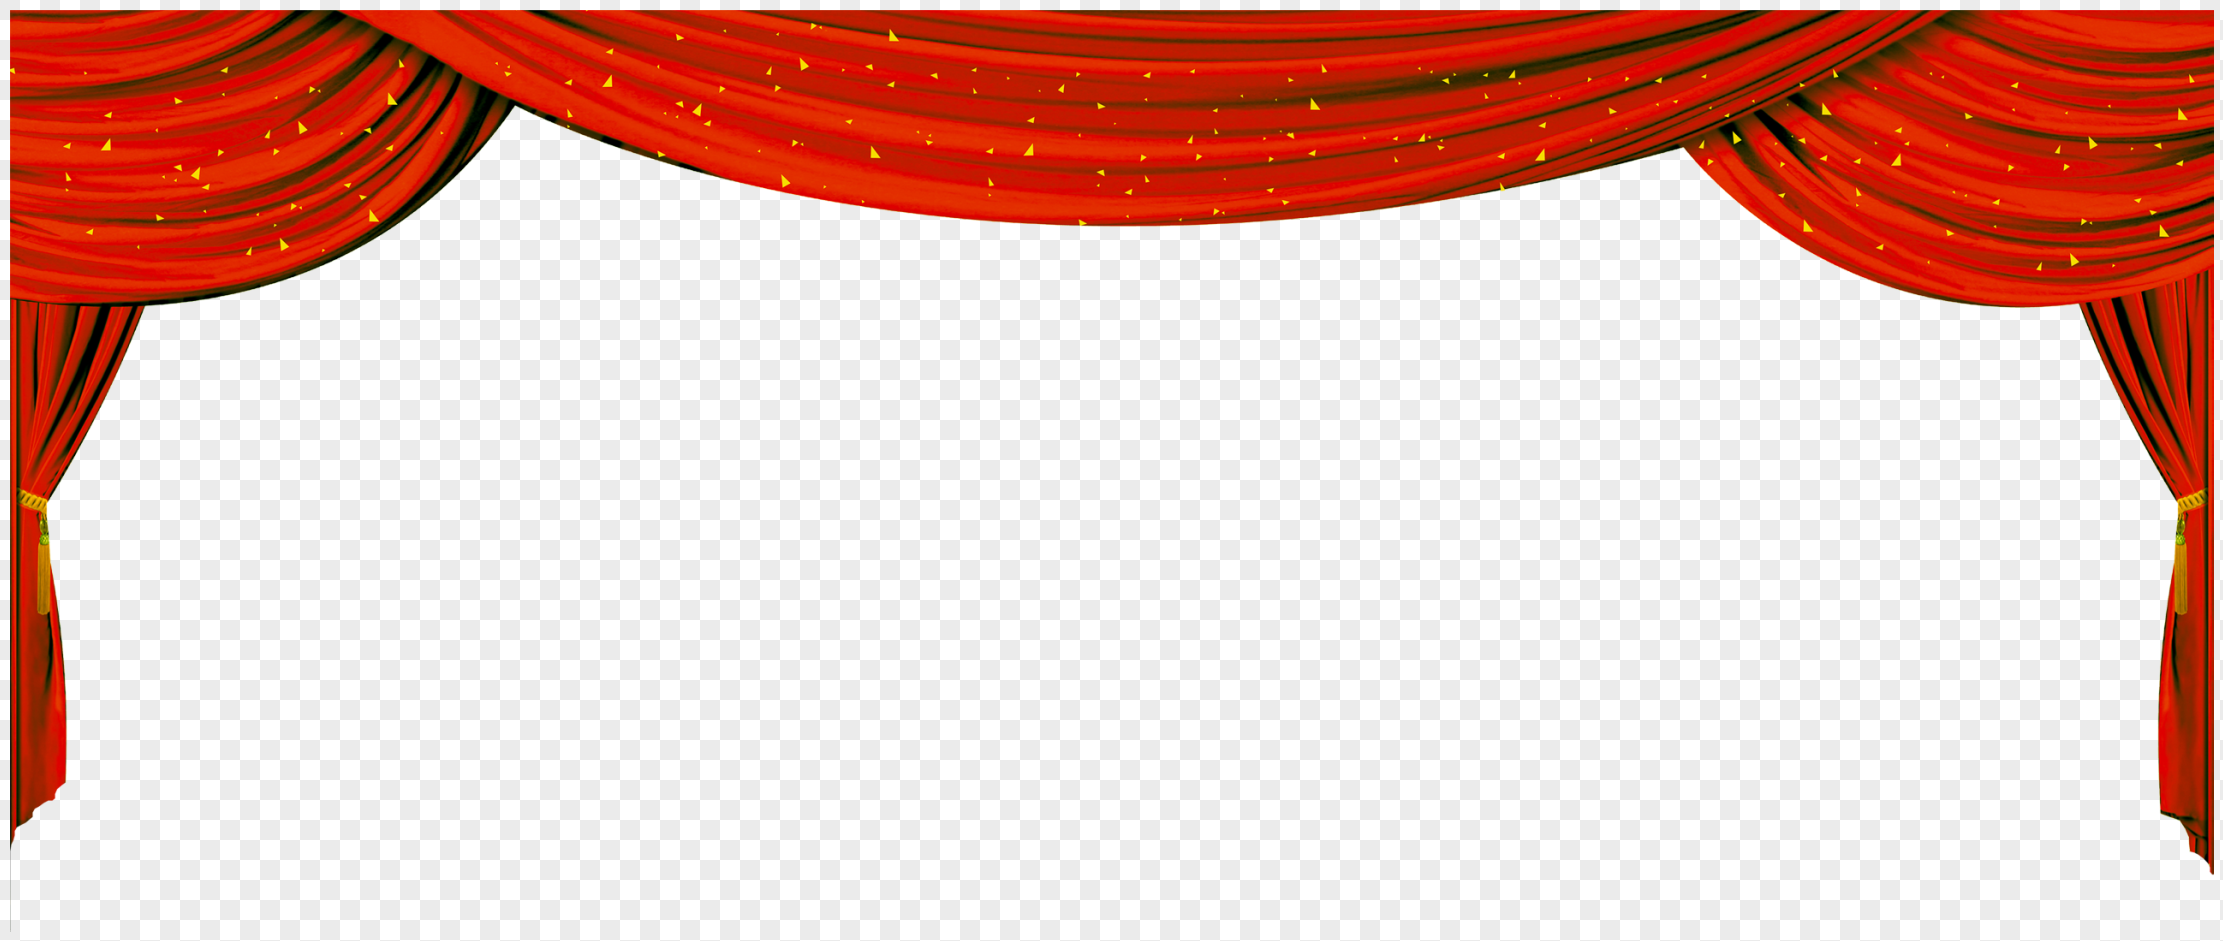 party building poster design red background ribbon